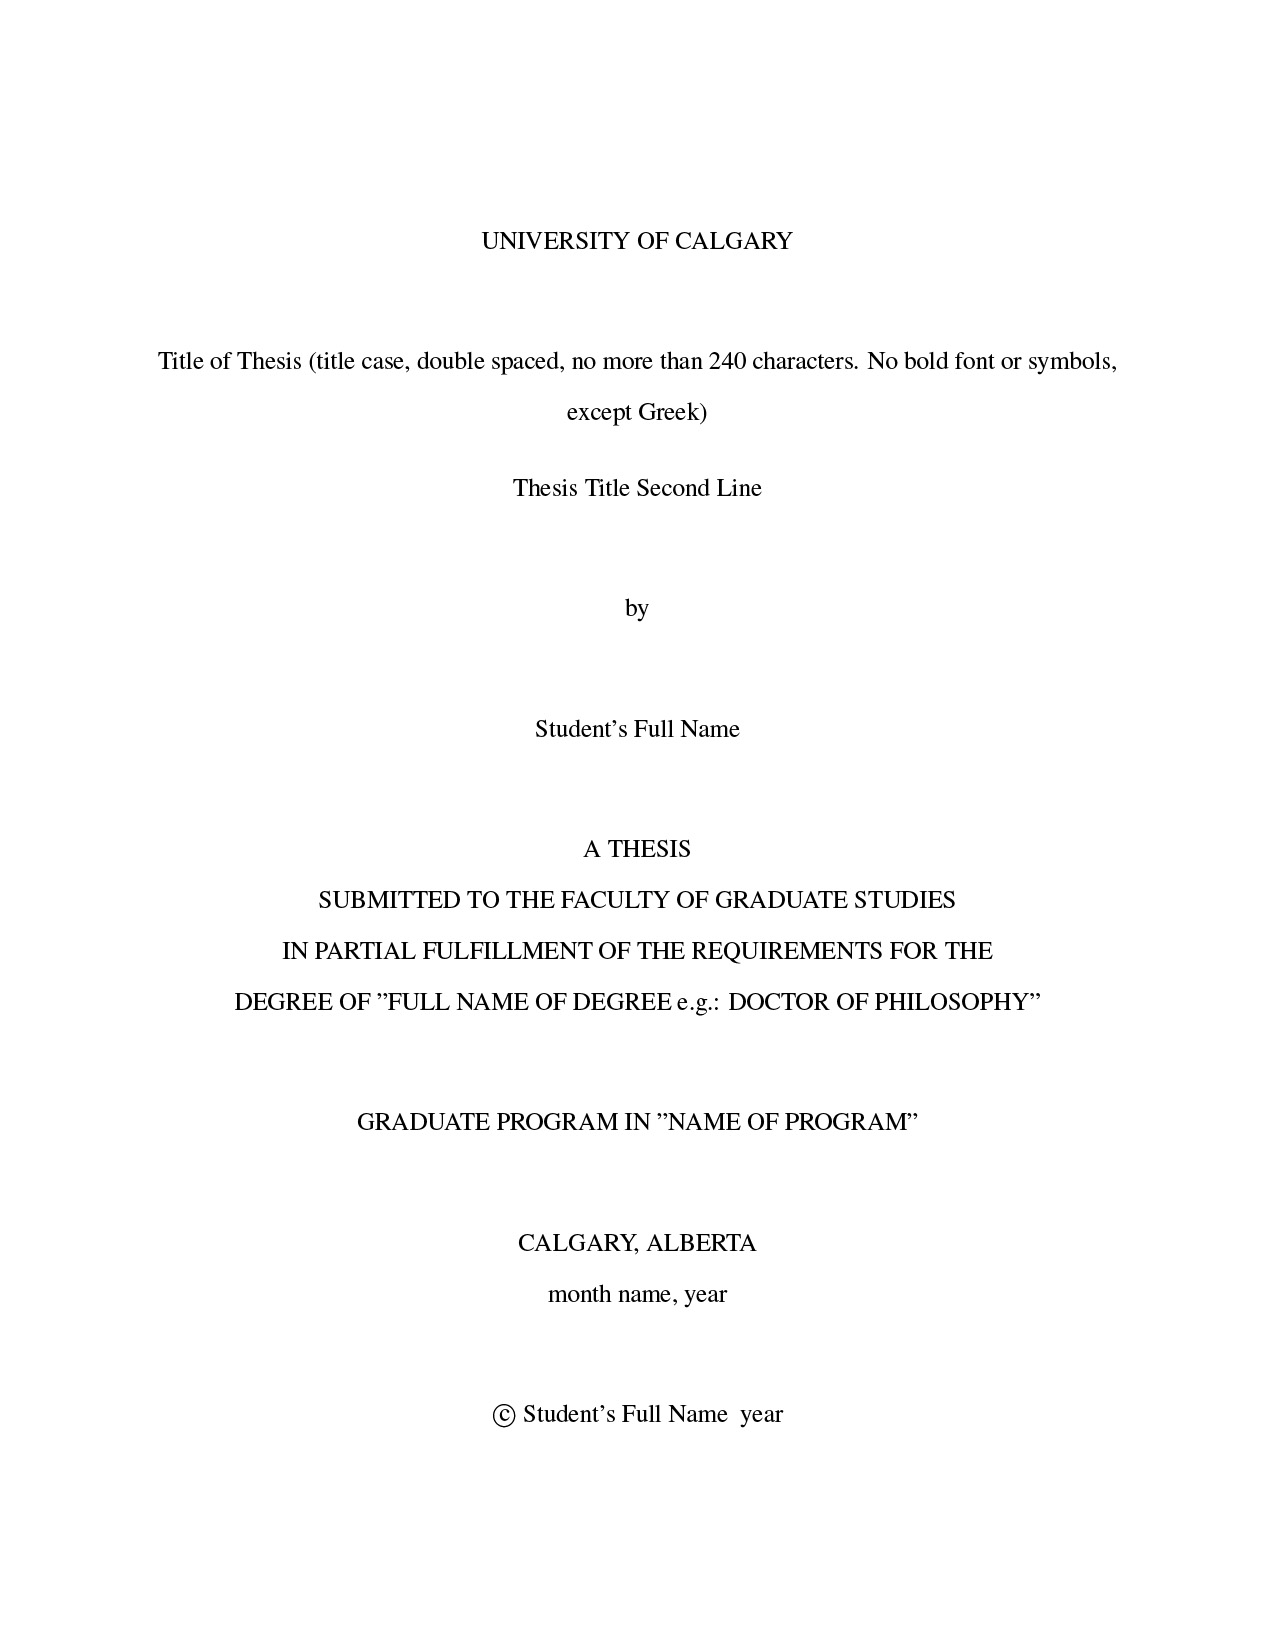 university of calgary latex thesis template